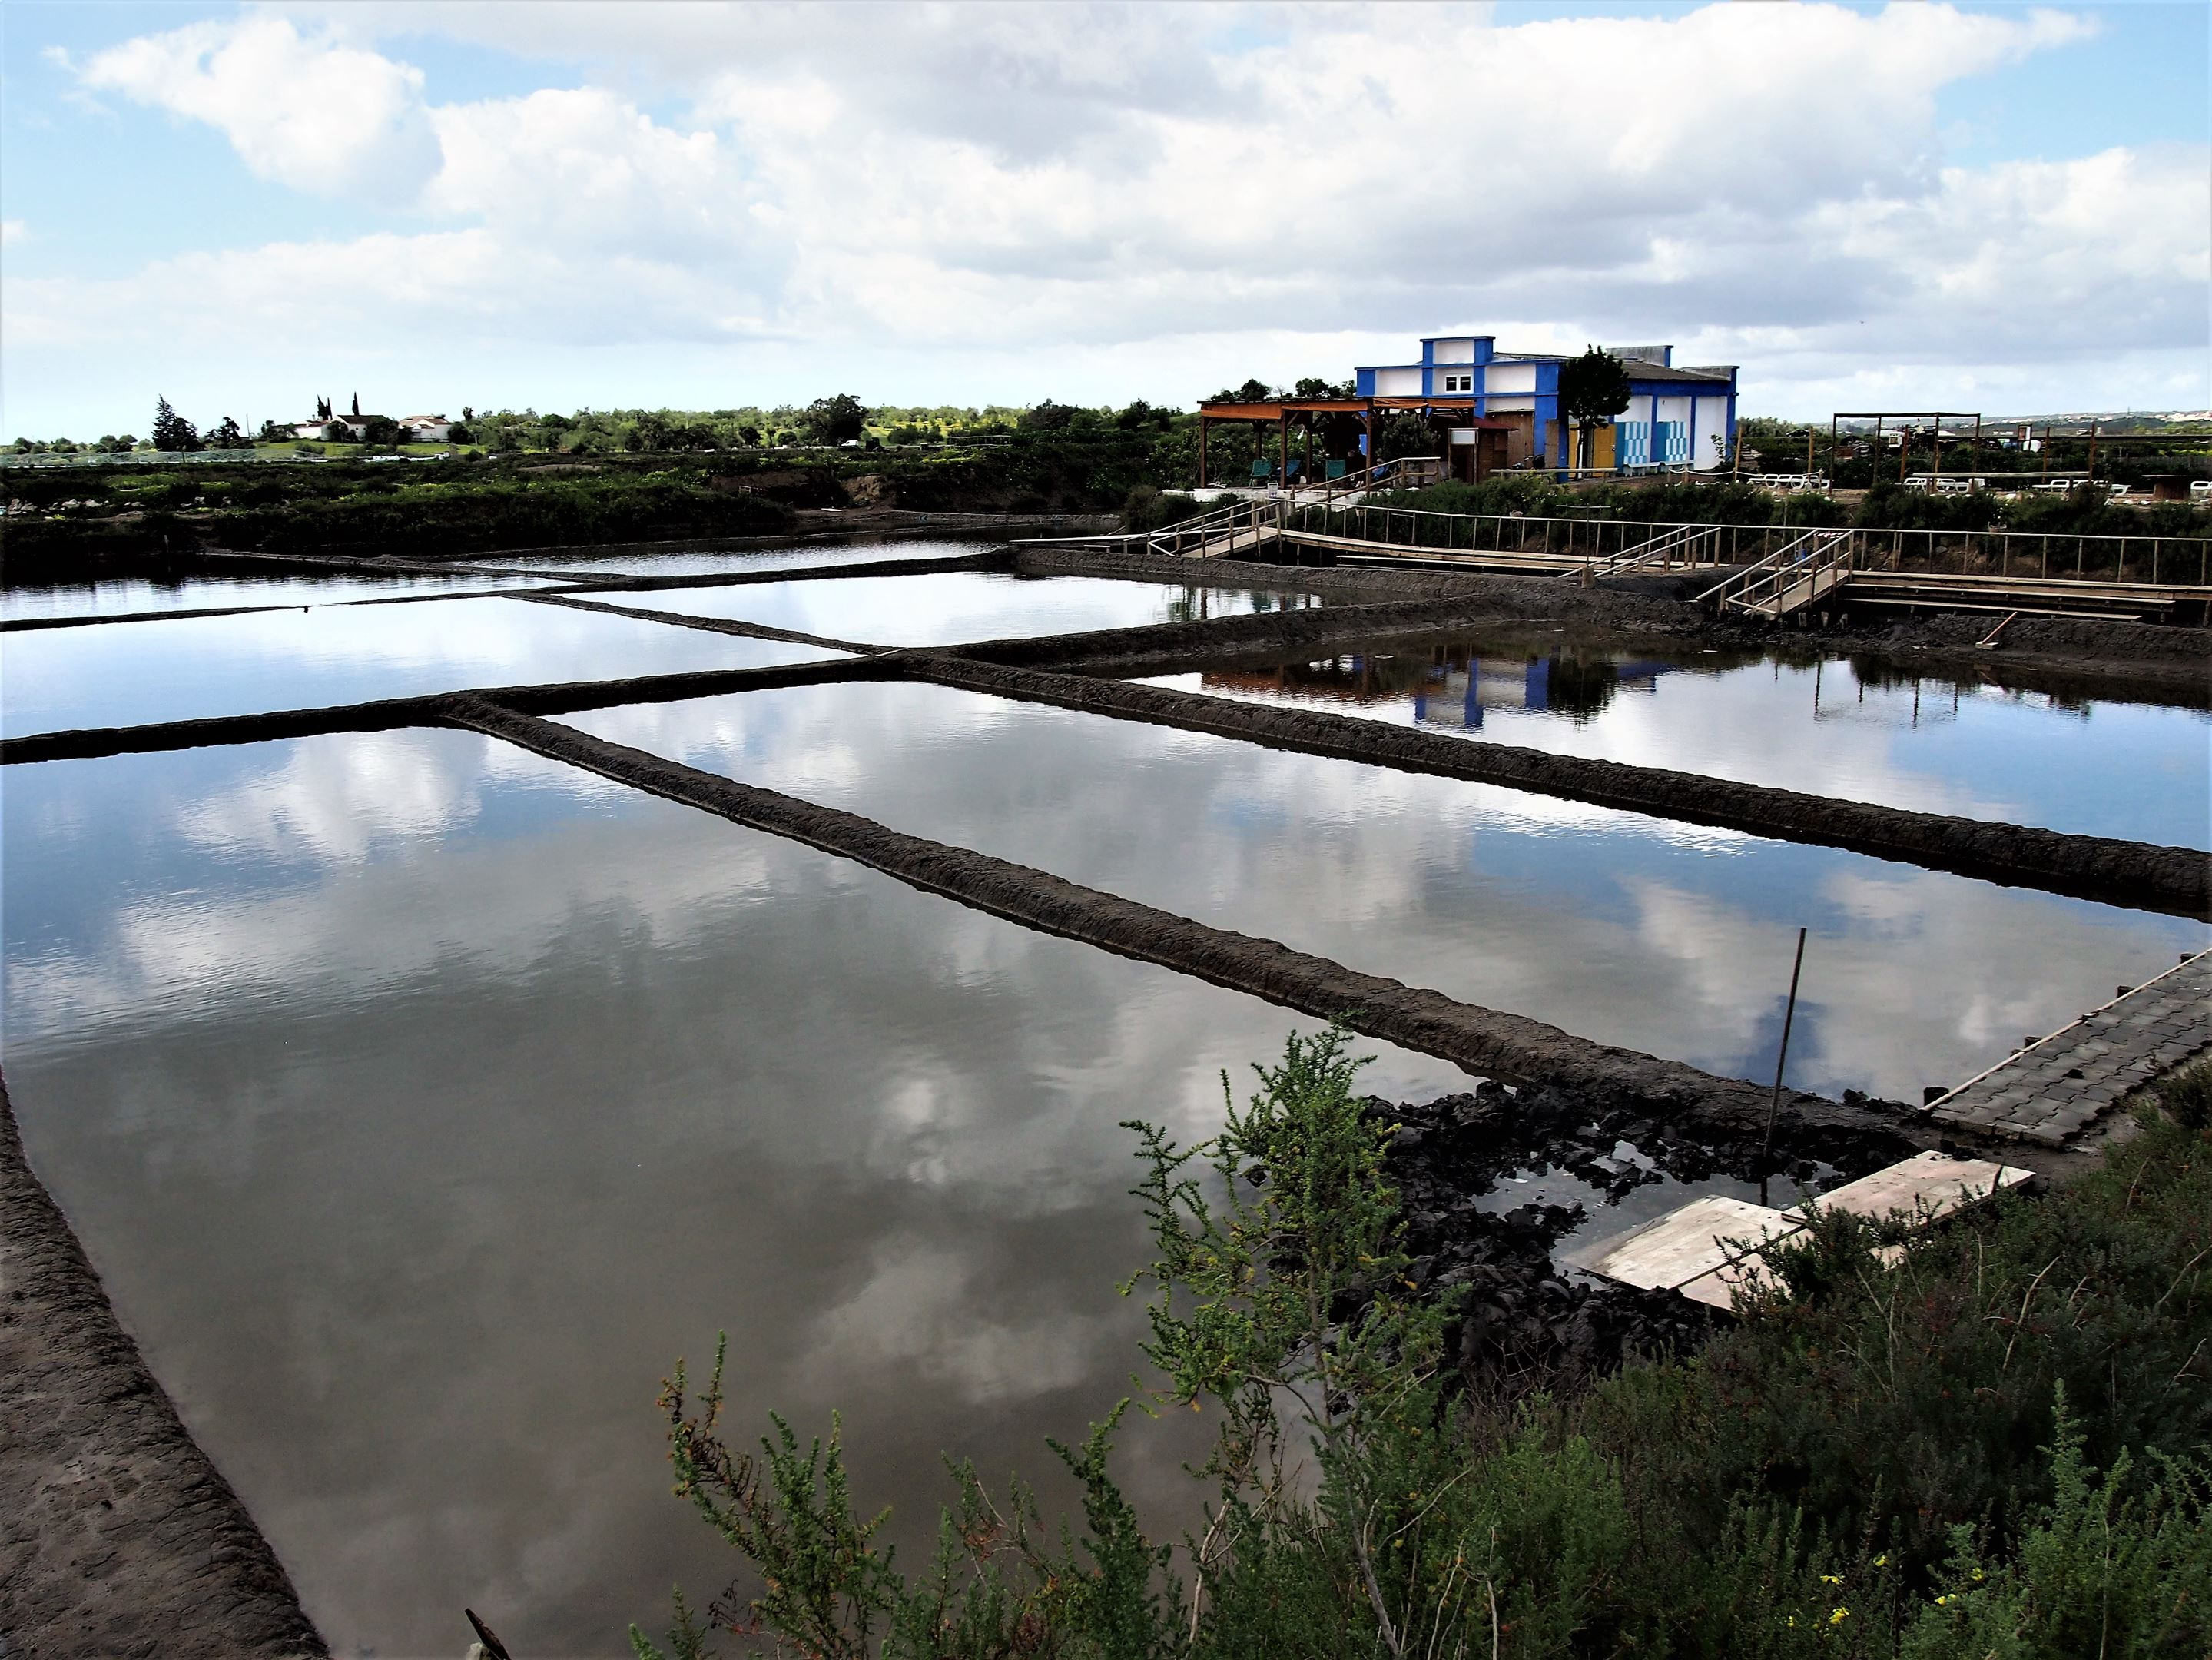 The Água Mãe spa just outide the town of Castro Marim, set within the salt pans named Salina da Barquinha